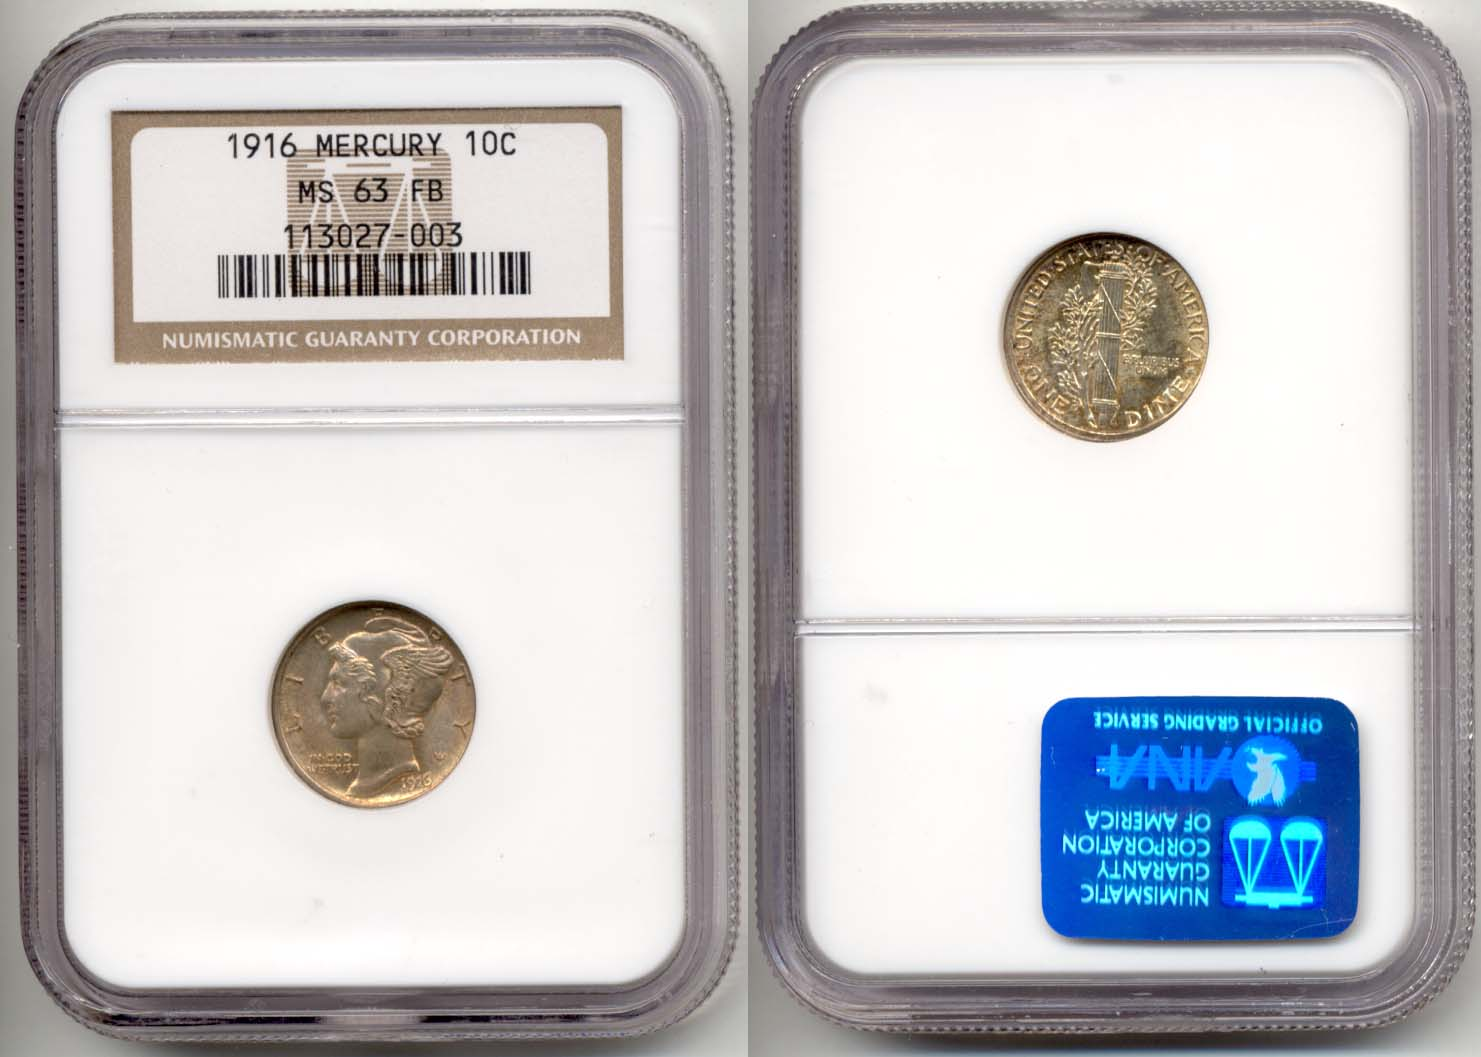 1916 Mercury Dime NGC MS-63 FB